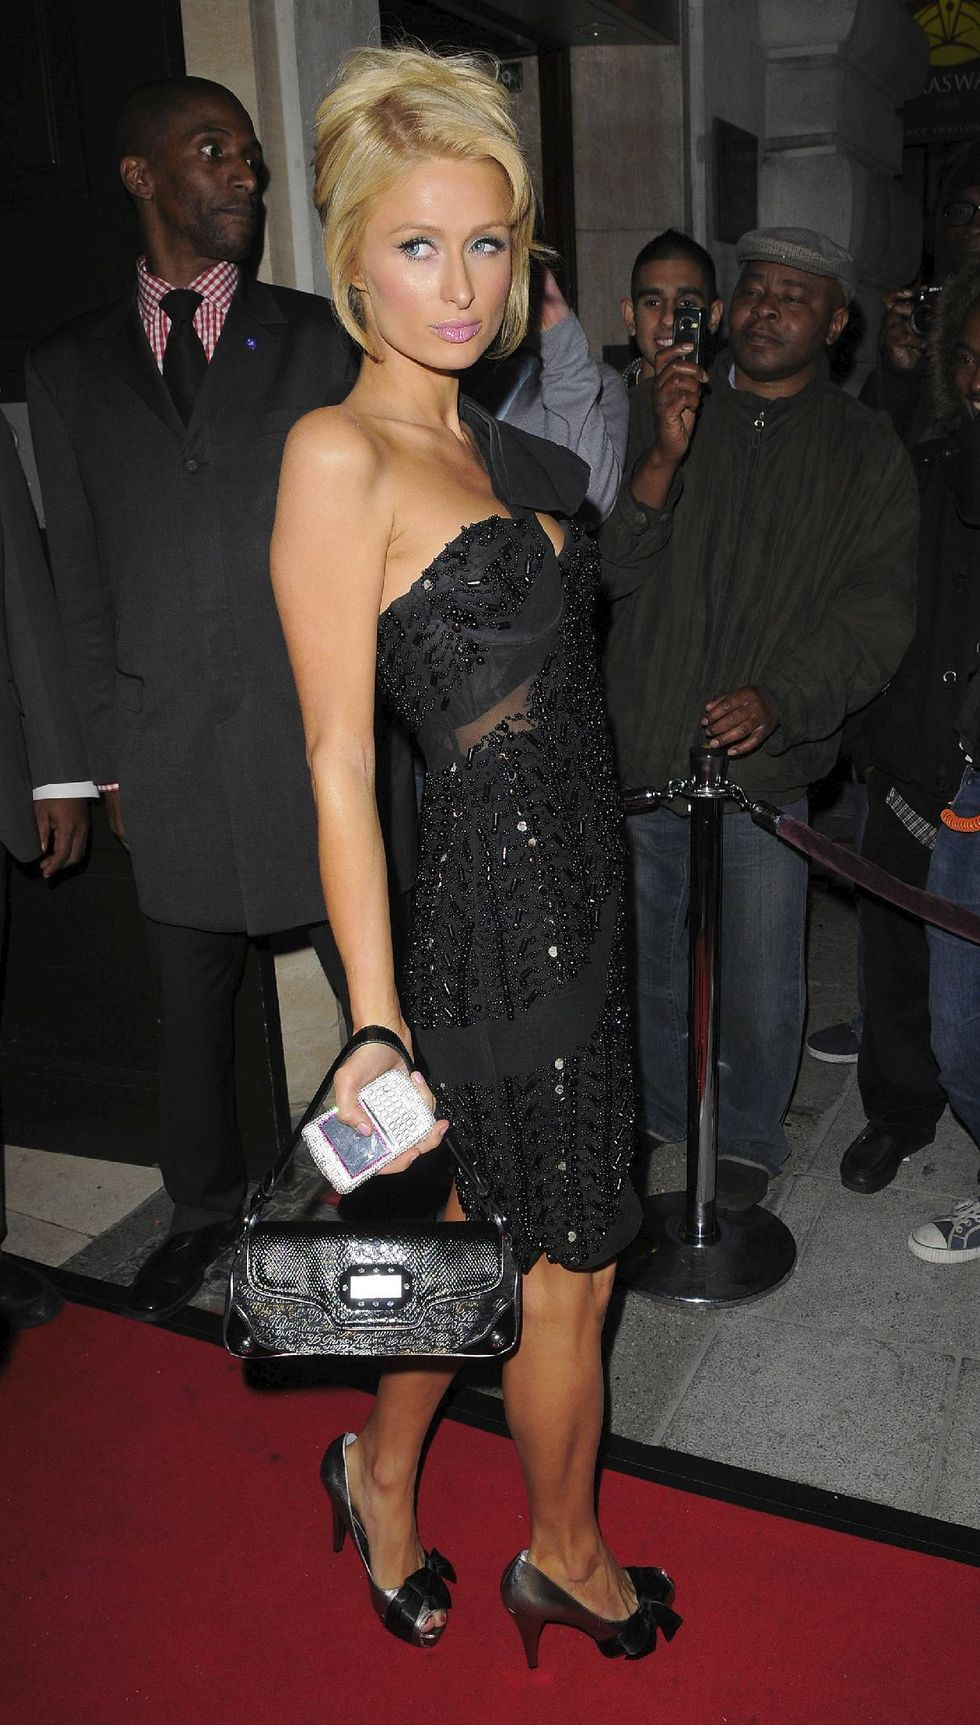 paris-hilton-at-the-cuckoo-club-in-london-01